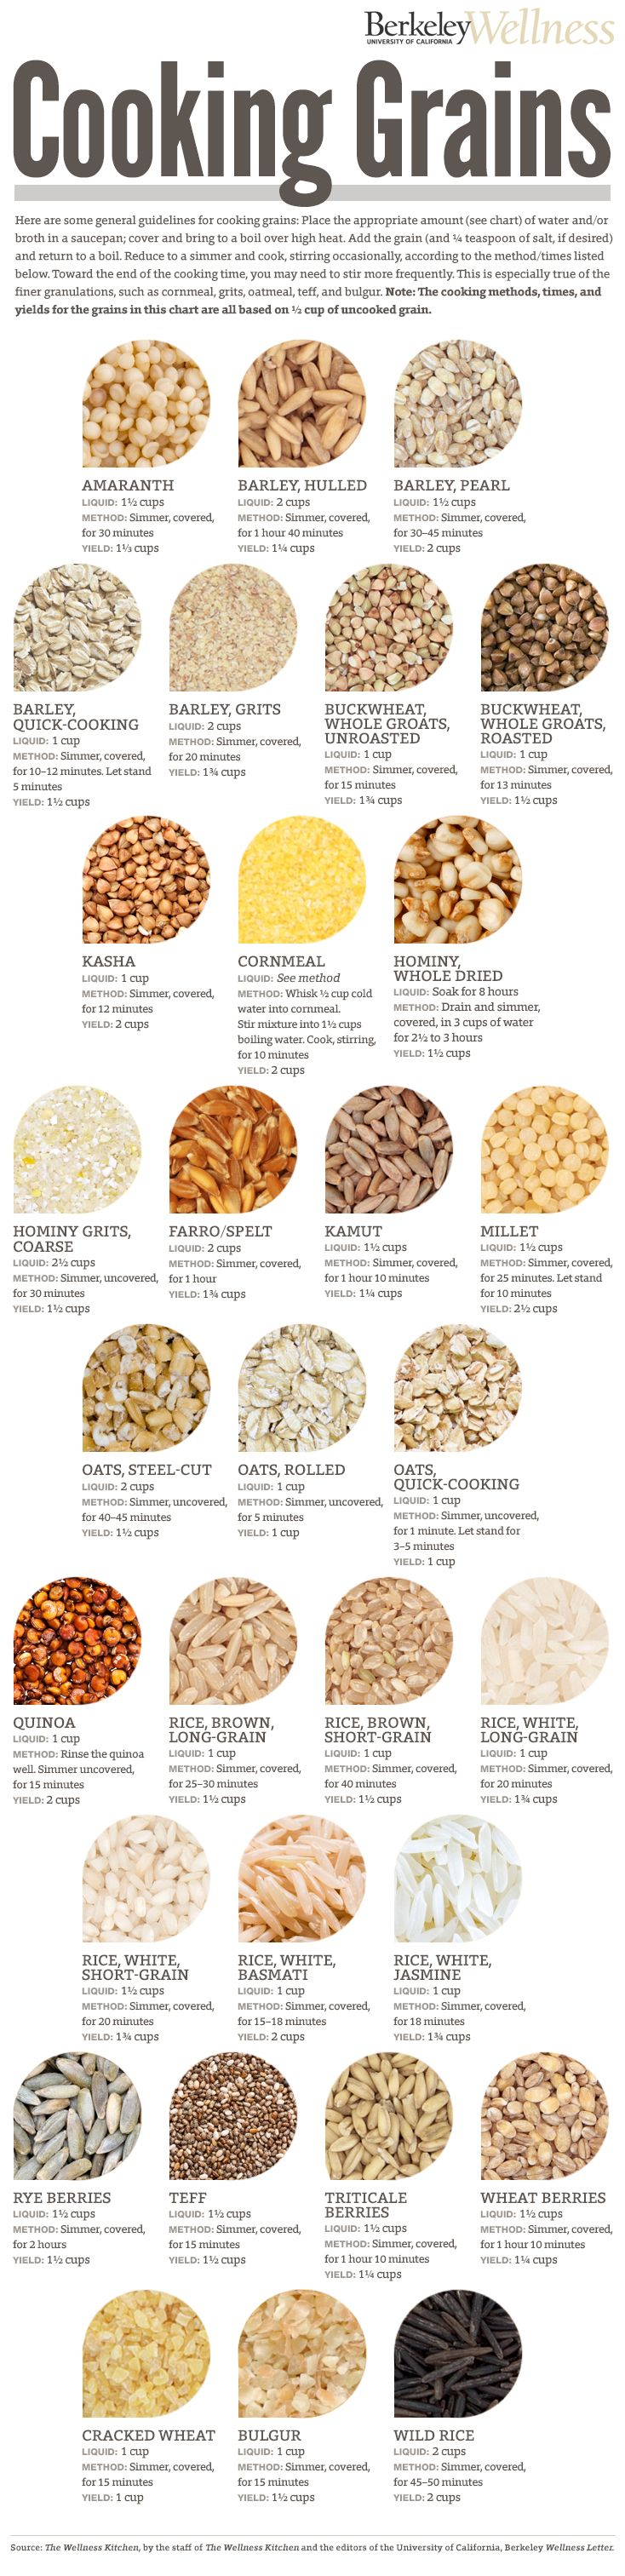 How to Cook Grains by berkeleywellness #Infographic #Cooking_Grains